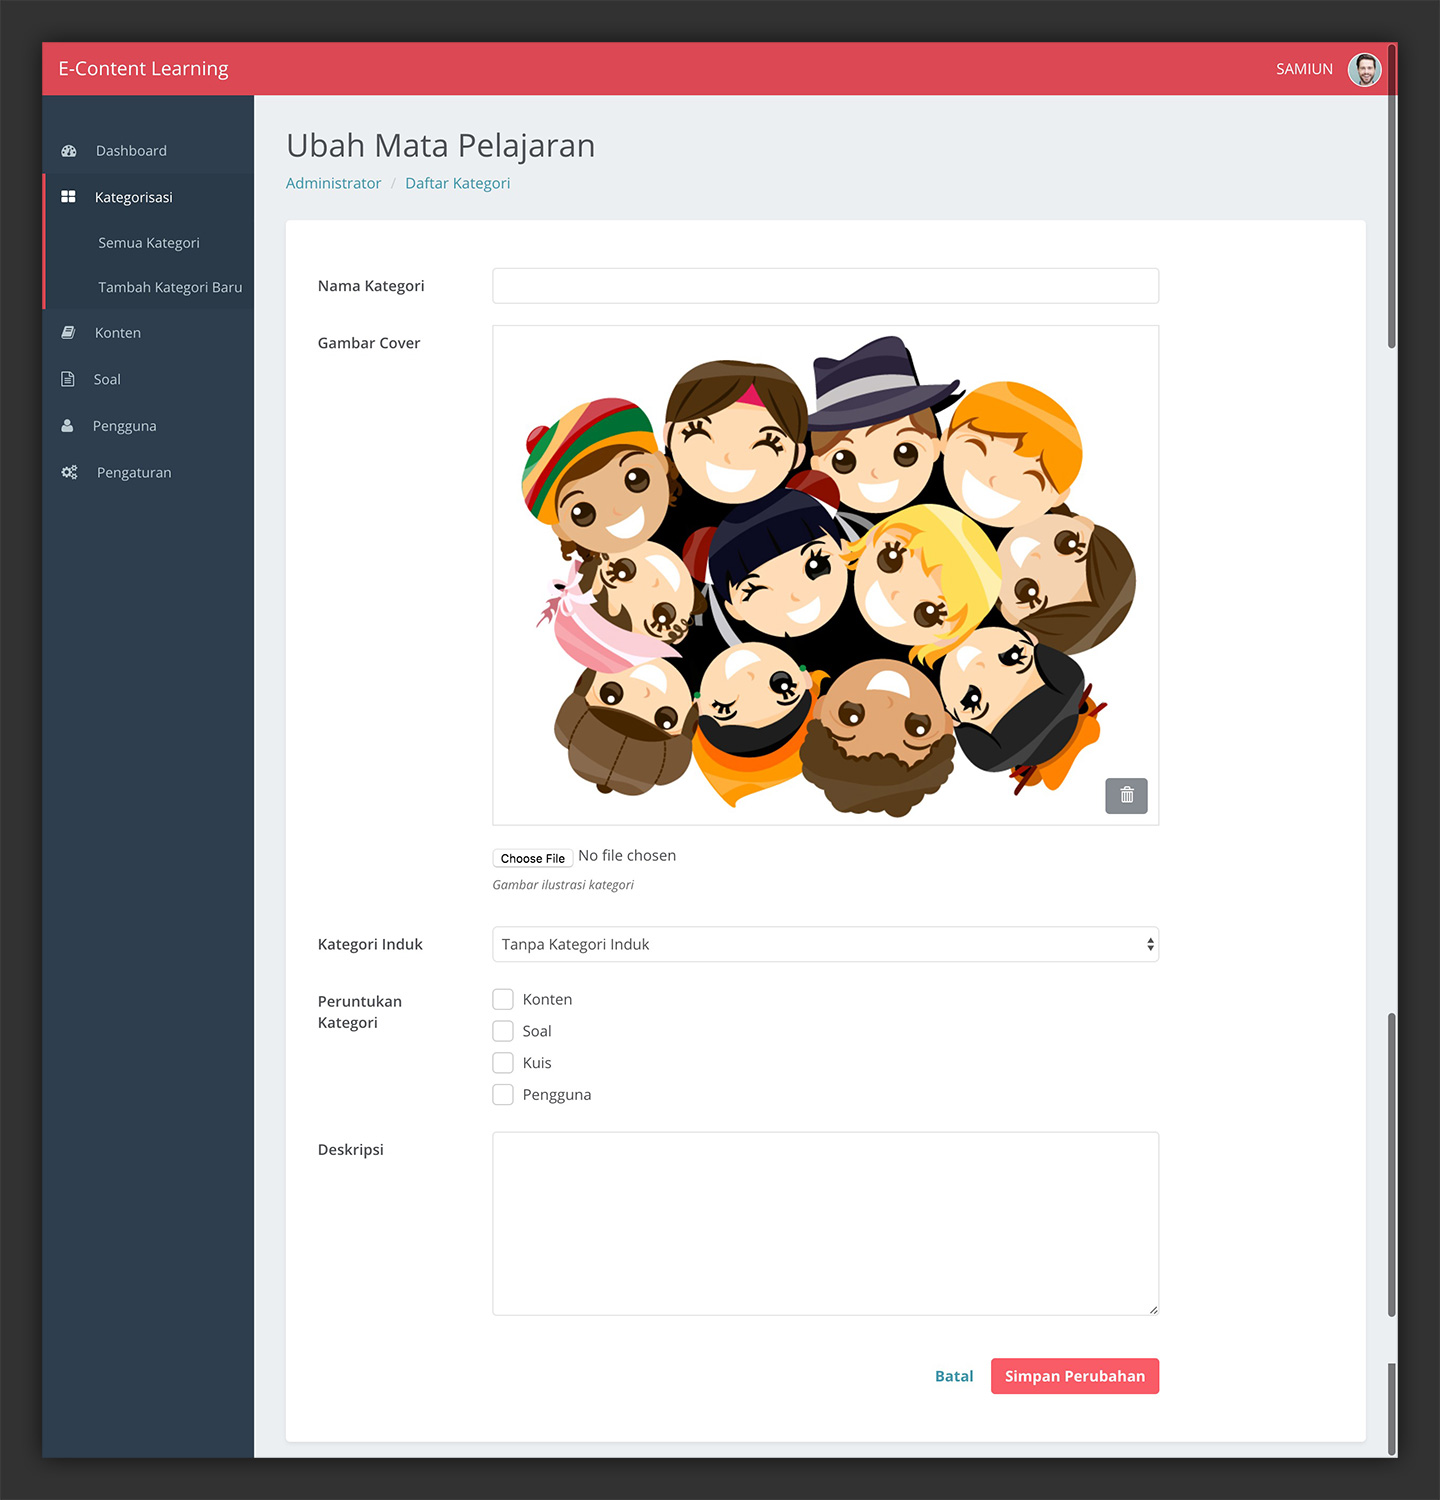 E-Learning Content Management Administration Dashboard